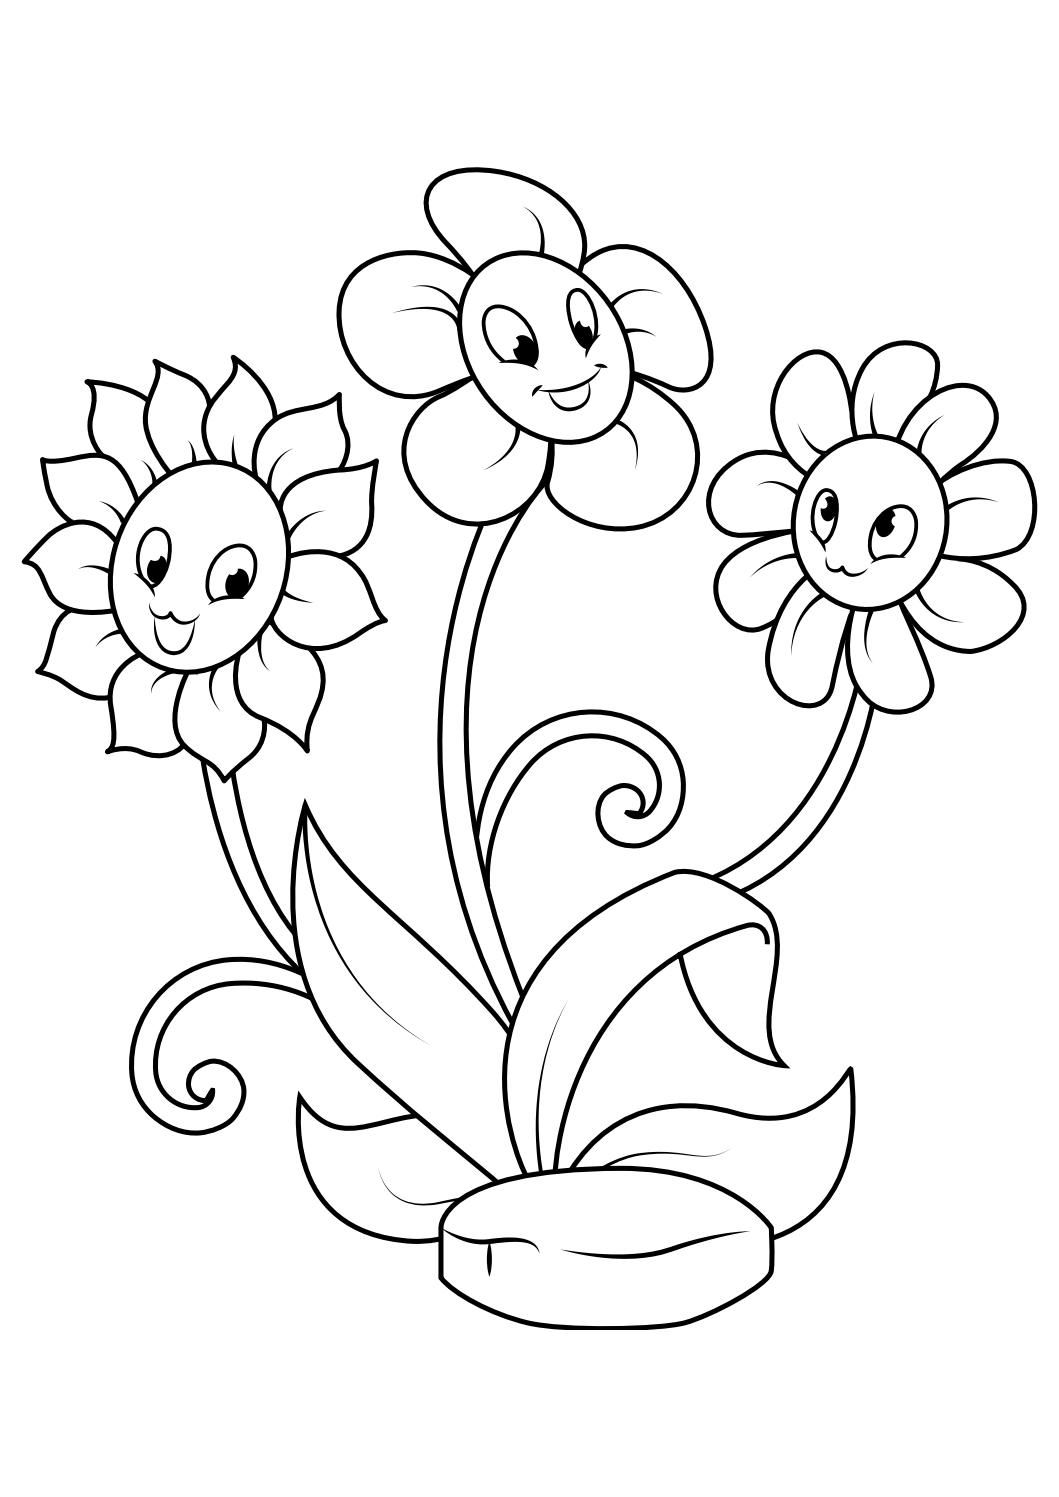 Flower Coloring Pages Printable Coloring Book For Kids Printable Flower Coloring Pages Flower Coloring Pages Flower Coloring Sheets